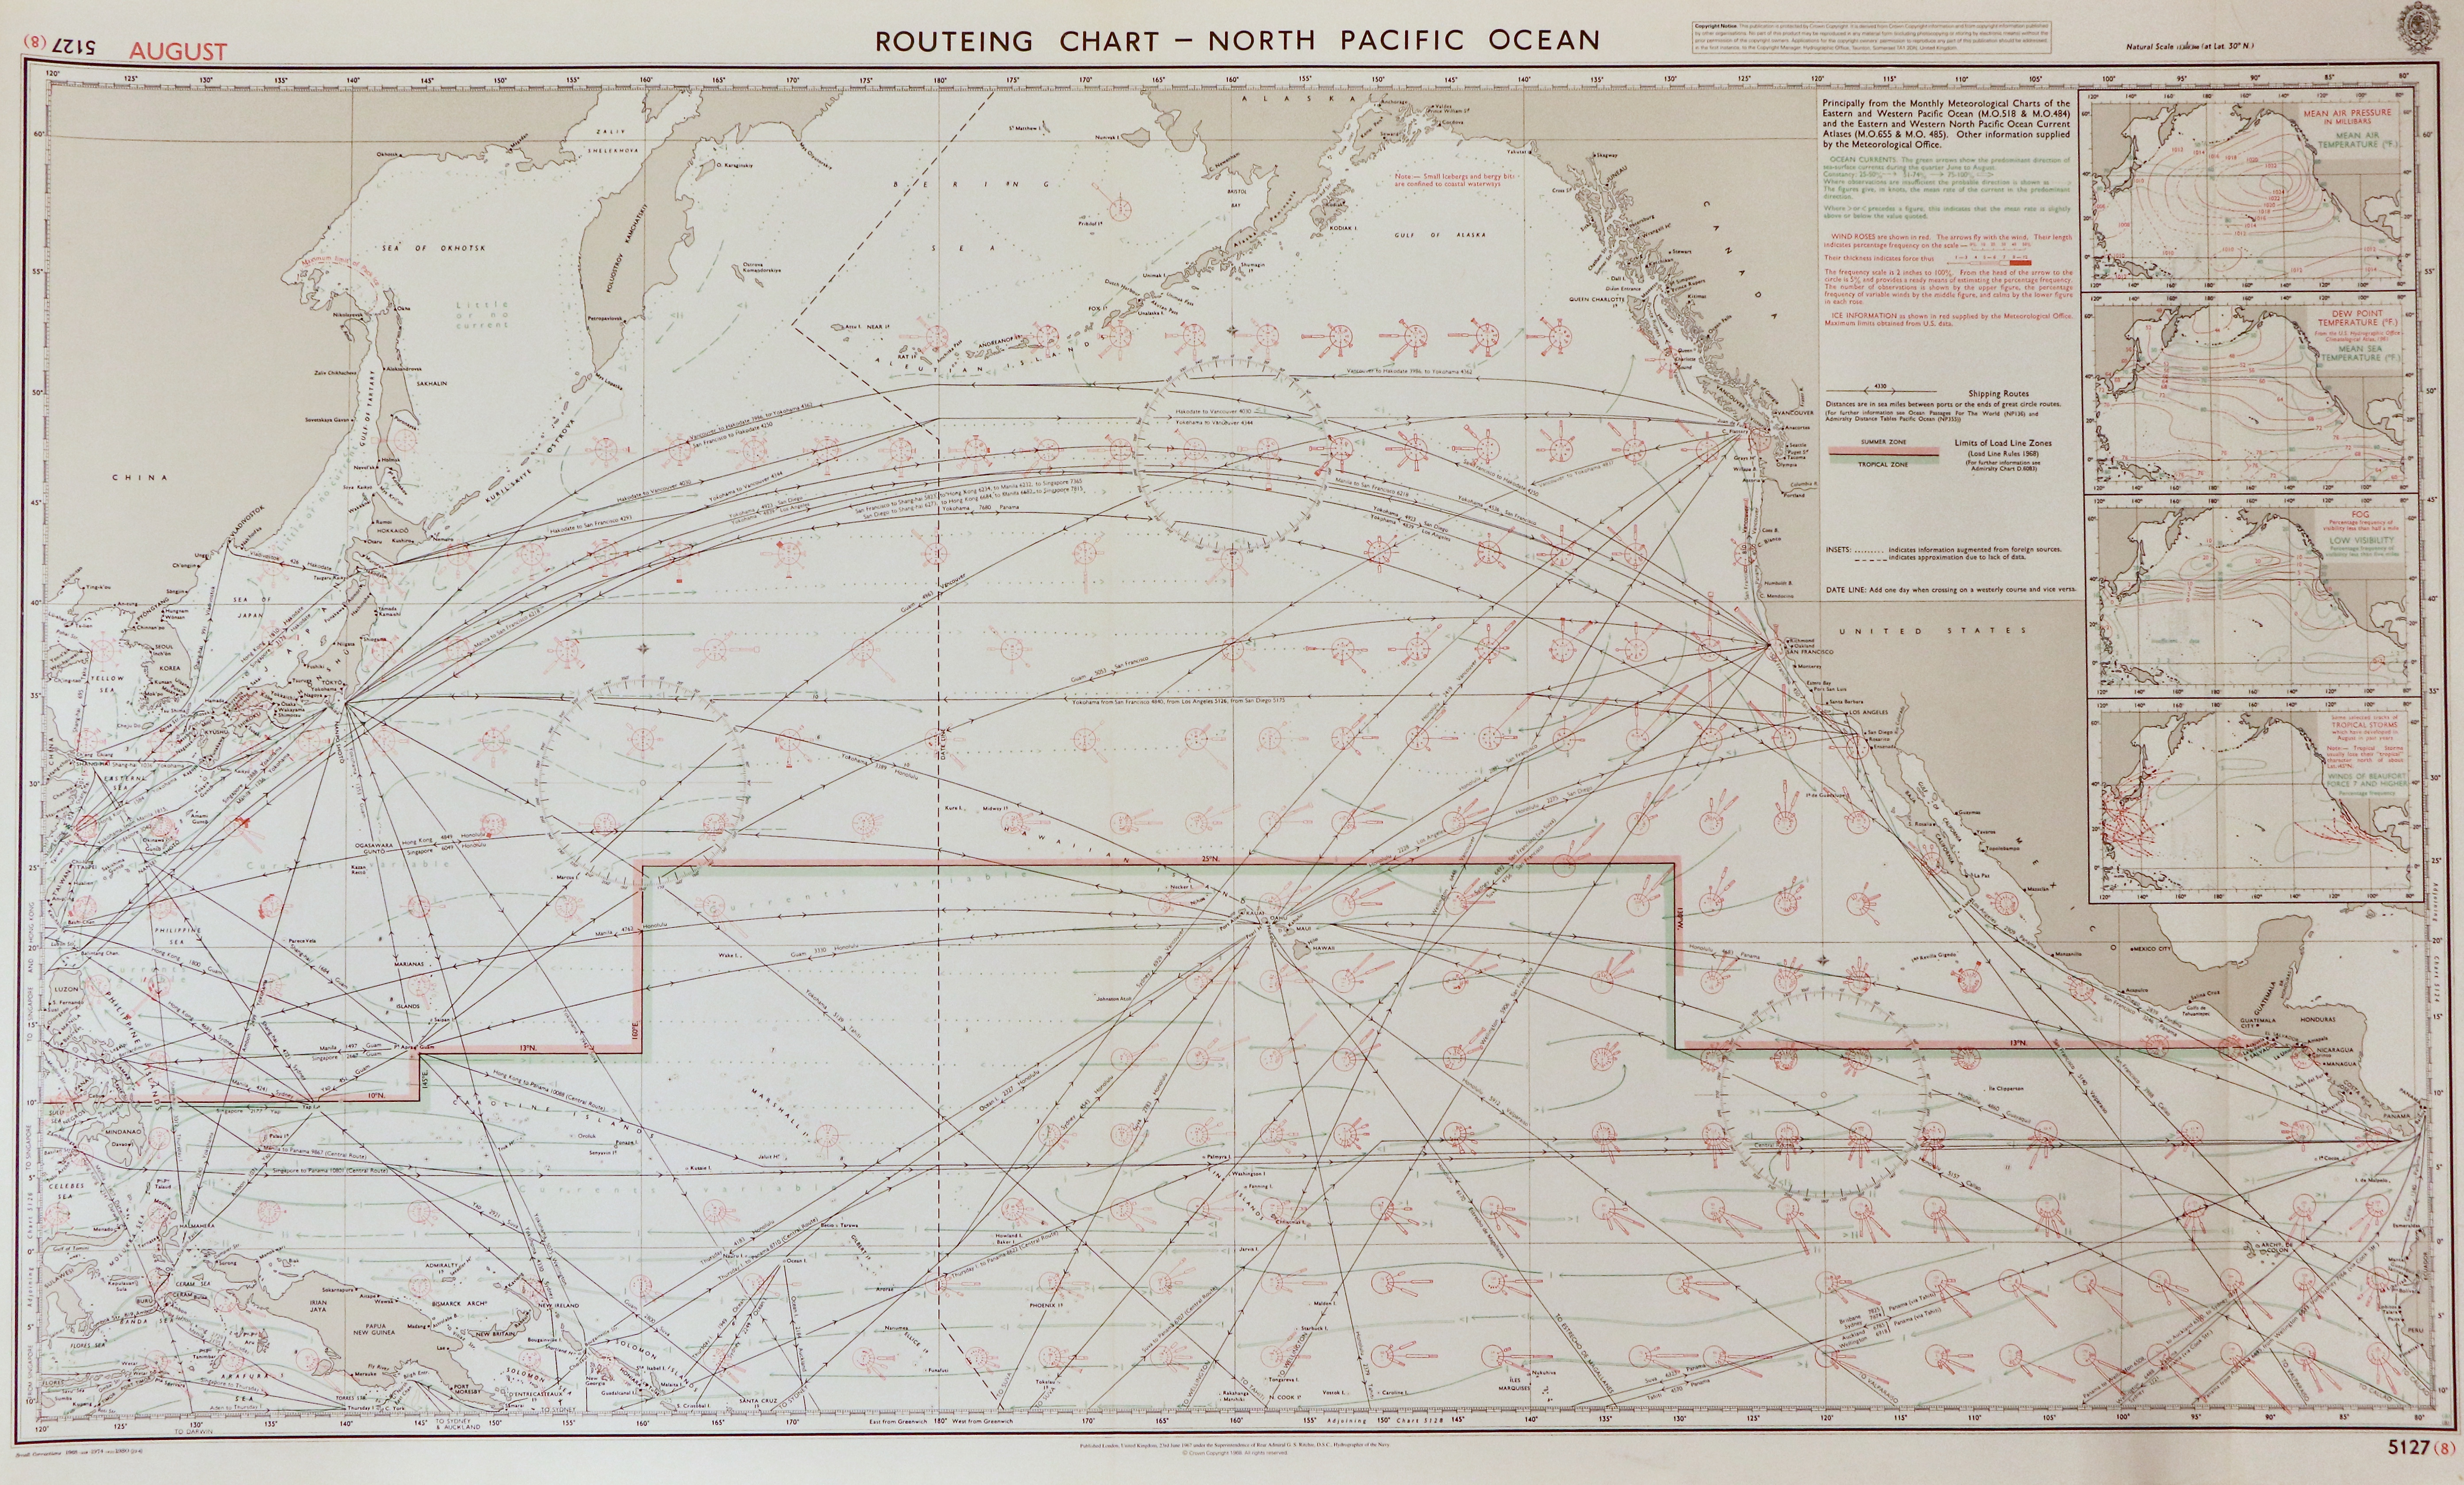 66 - Routeing Chart - North Pacific Ocean (August)